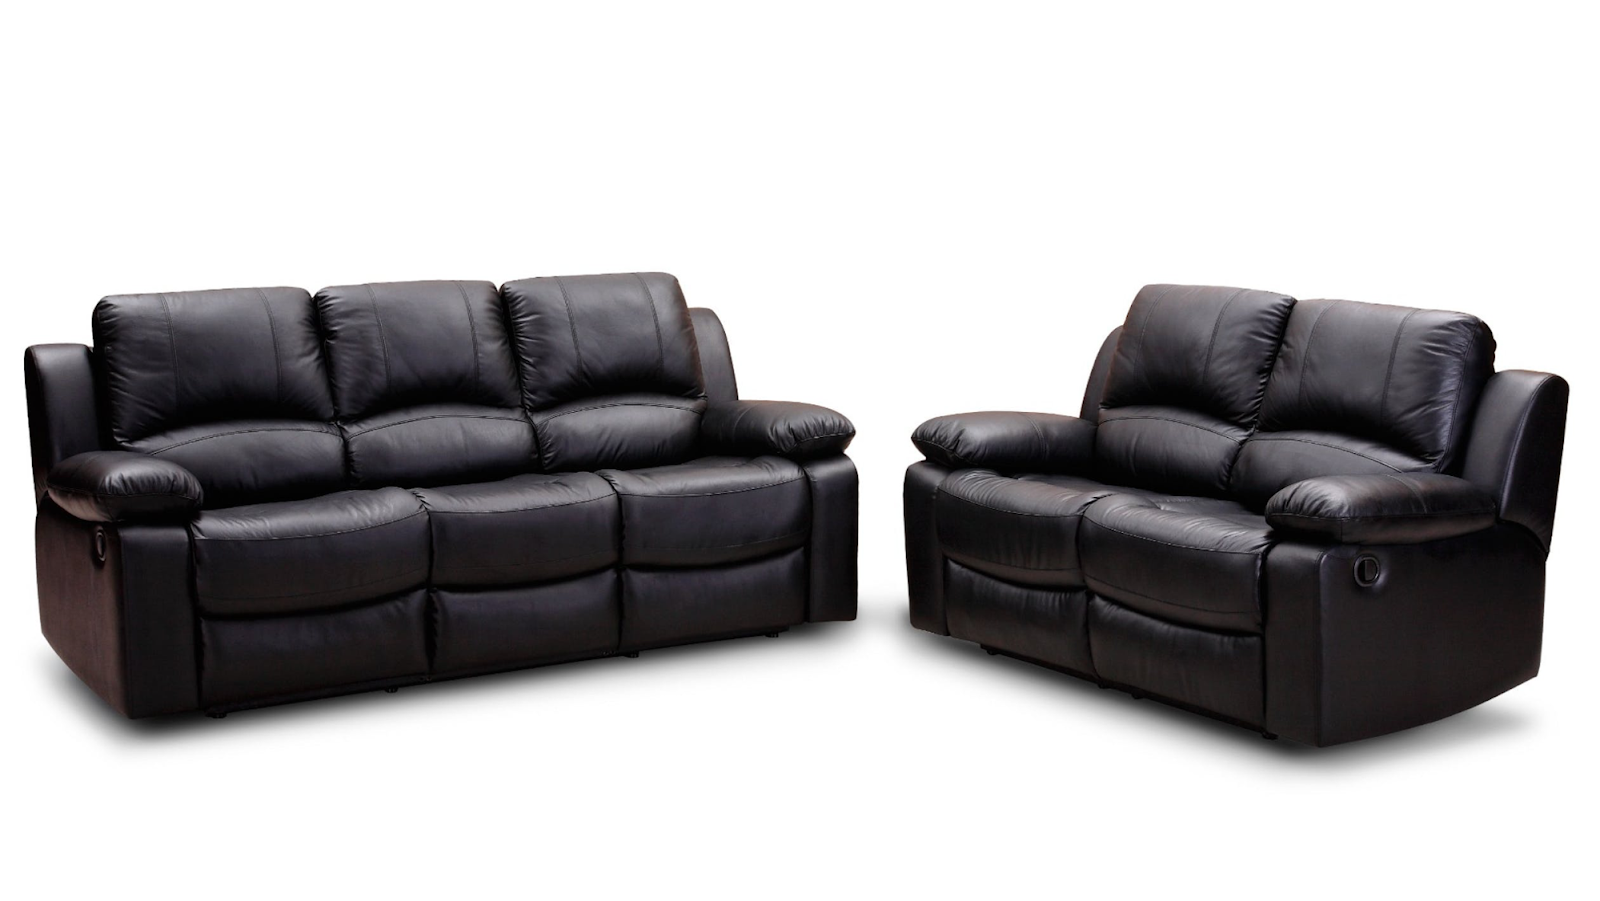 How to choose a reliable furniture shop that will enhance the look of your home interiors black sofa